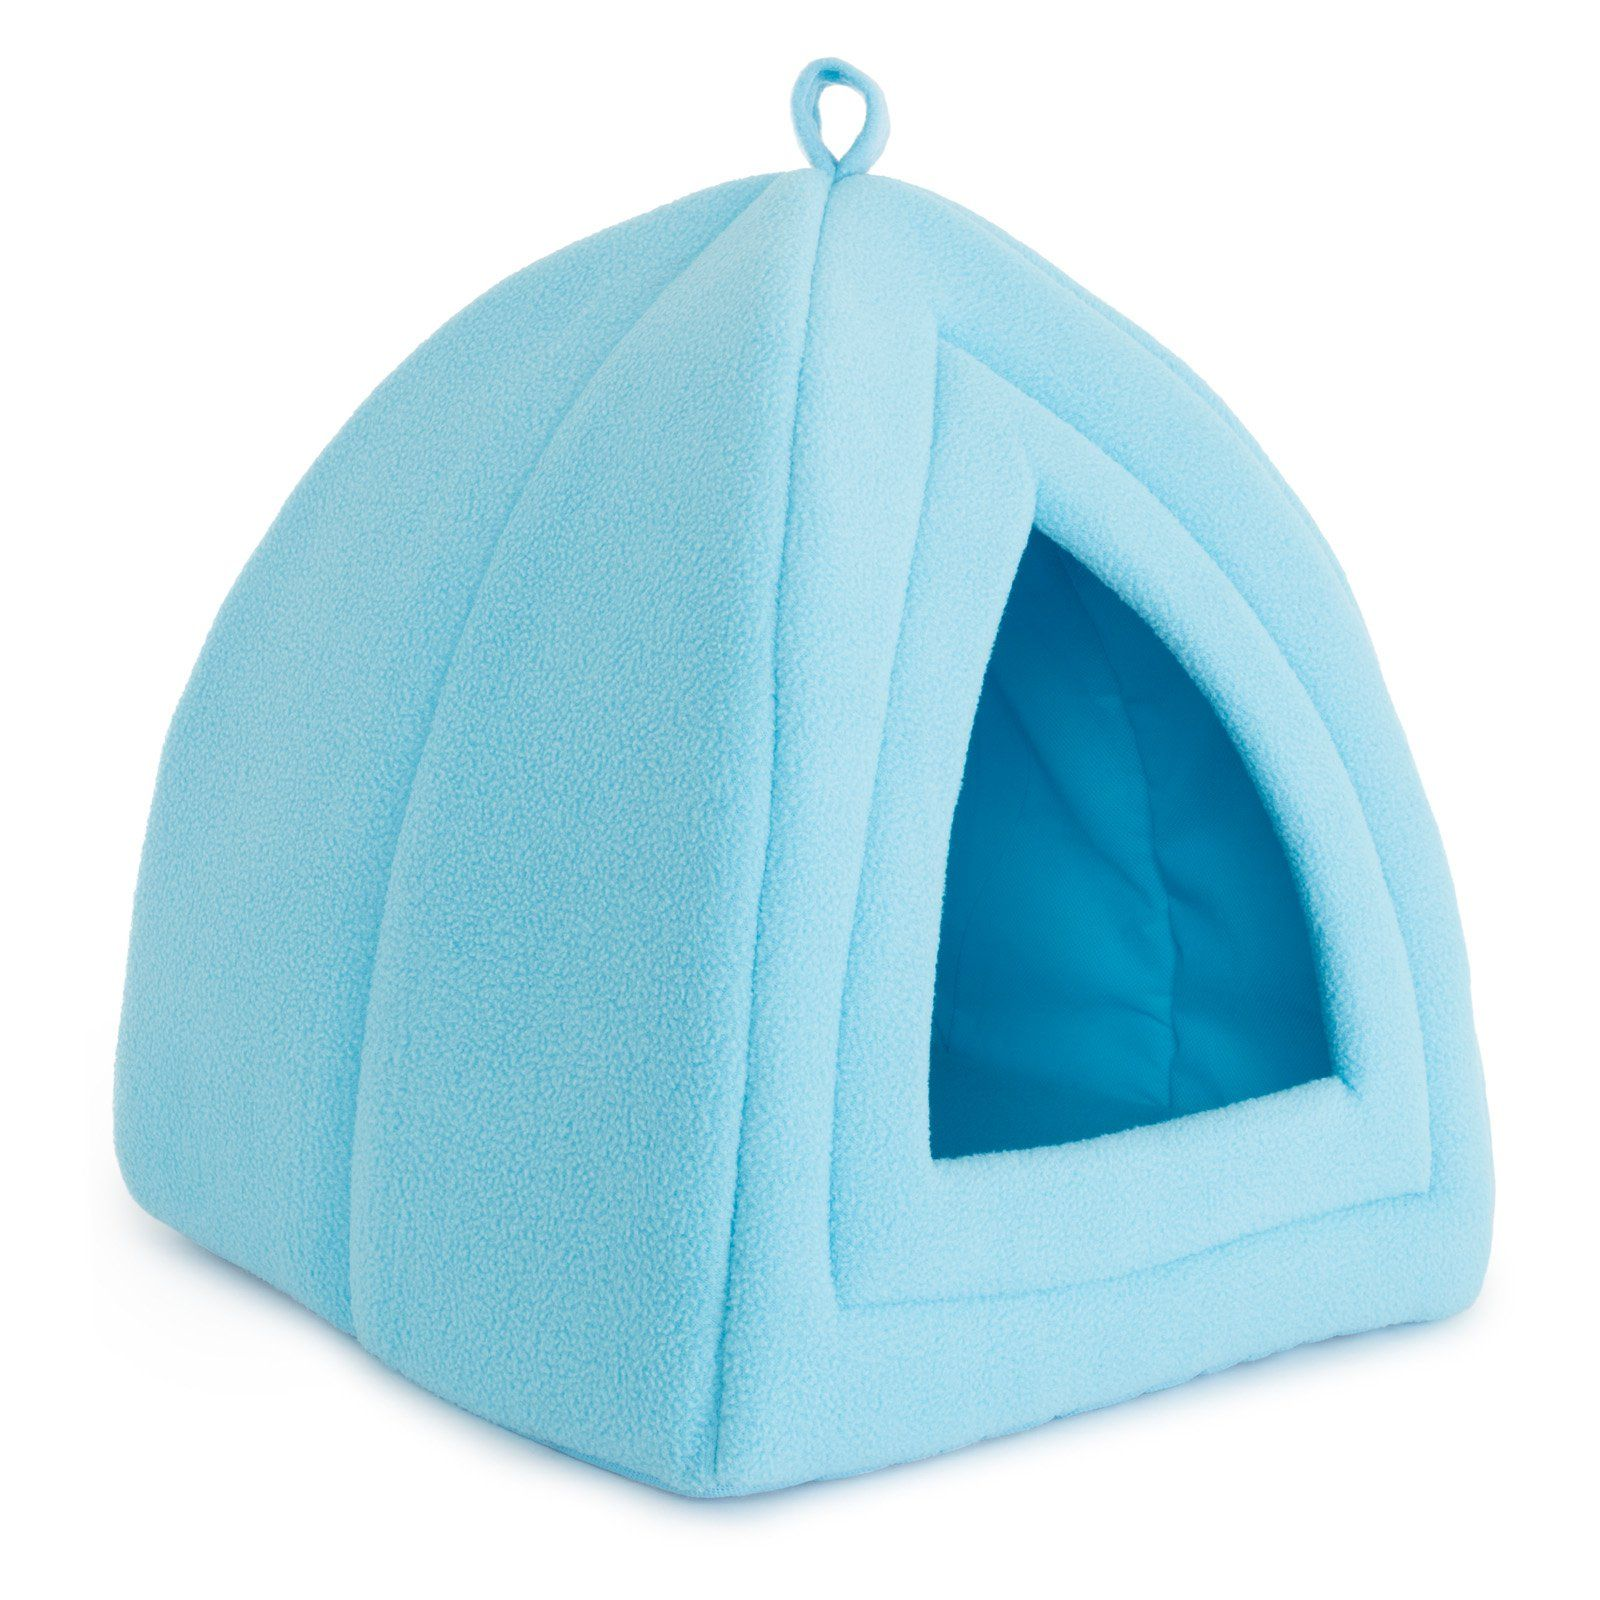 Petmaker Cozy Kitty Tent Igloo Plush Cat Bed Blue Cat